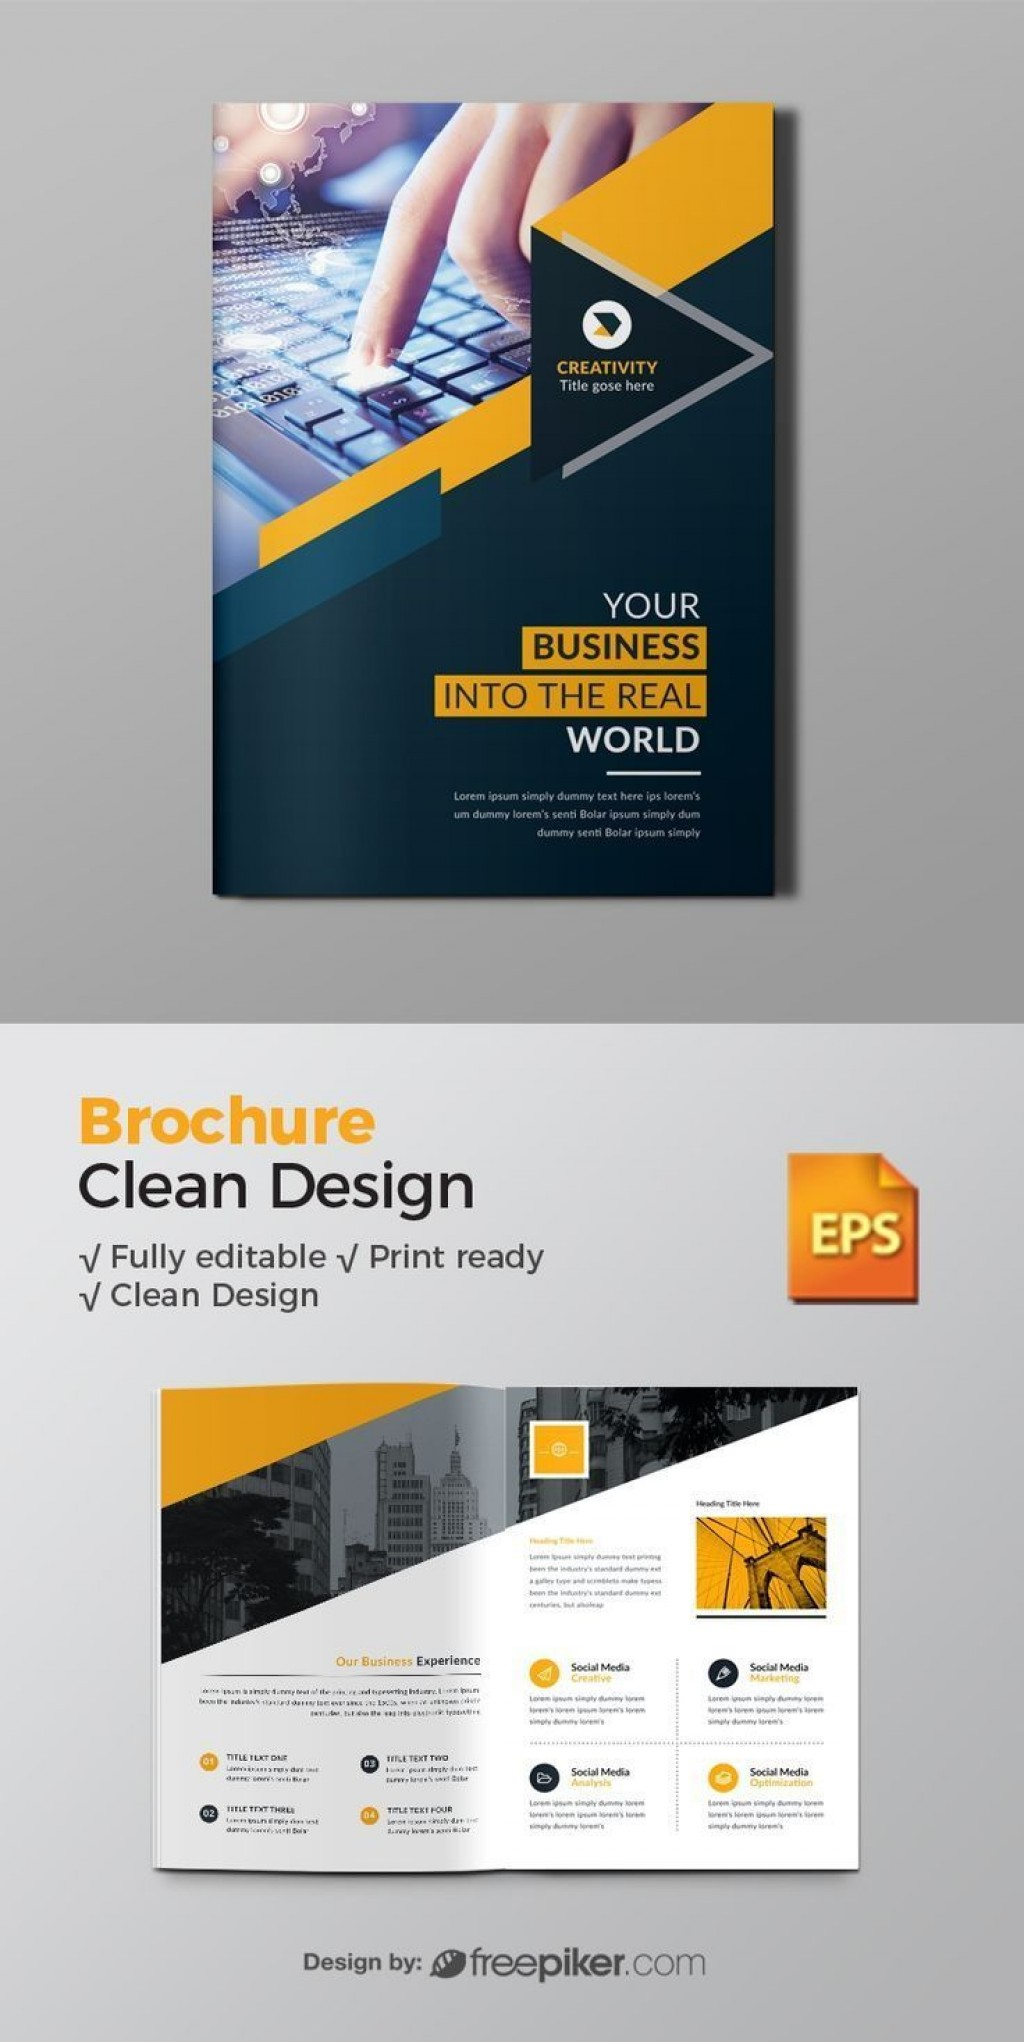 000 Amazing Brochure Design Template Free Download Psd High Definition Large